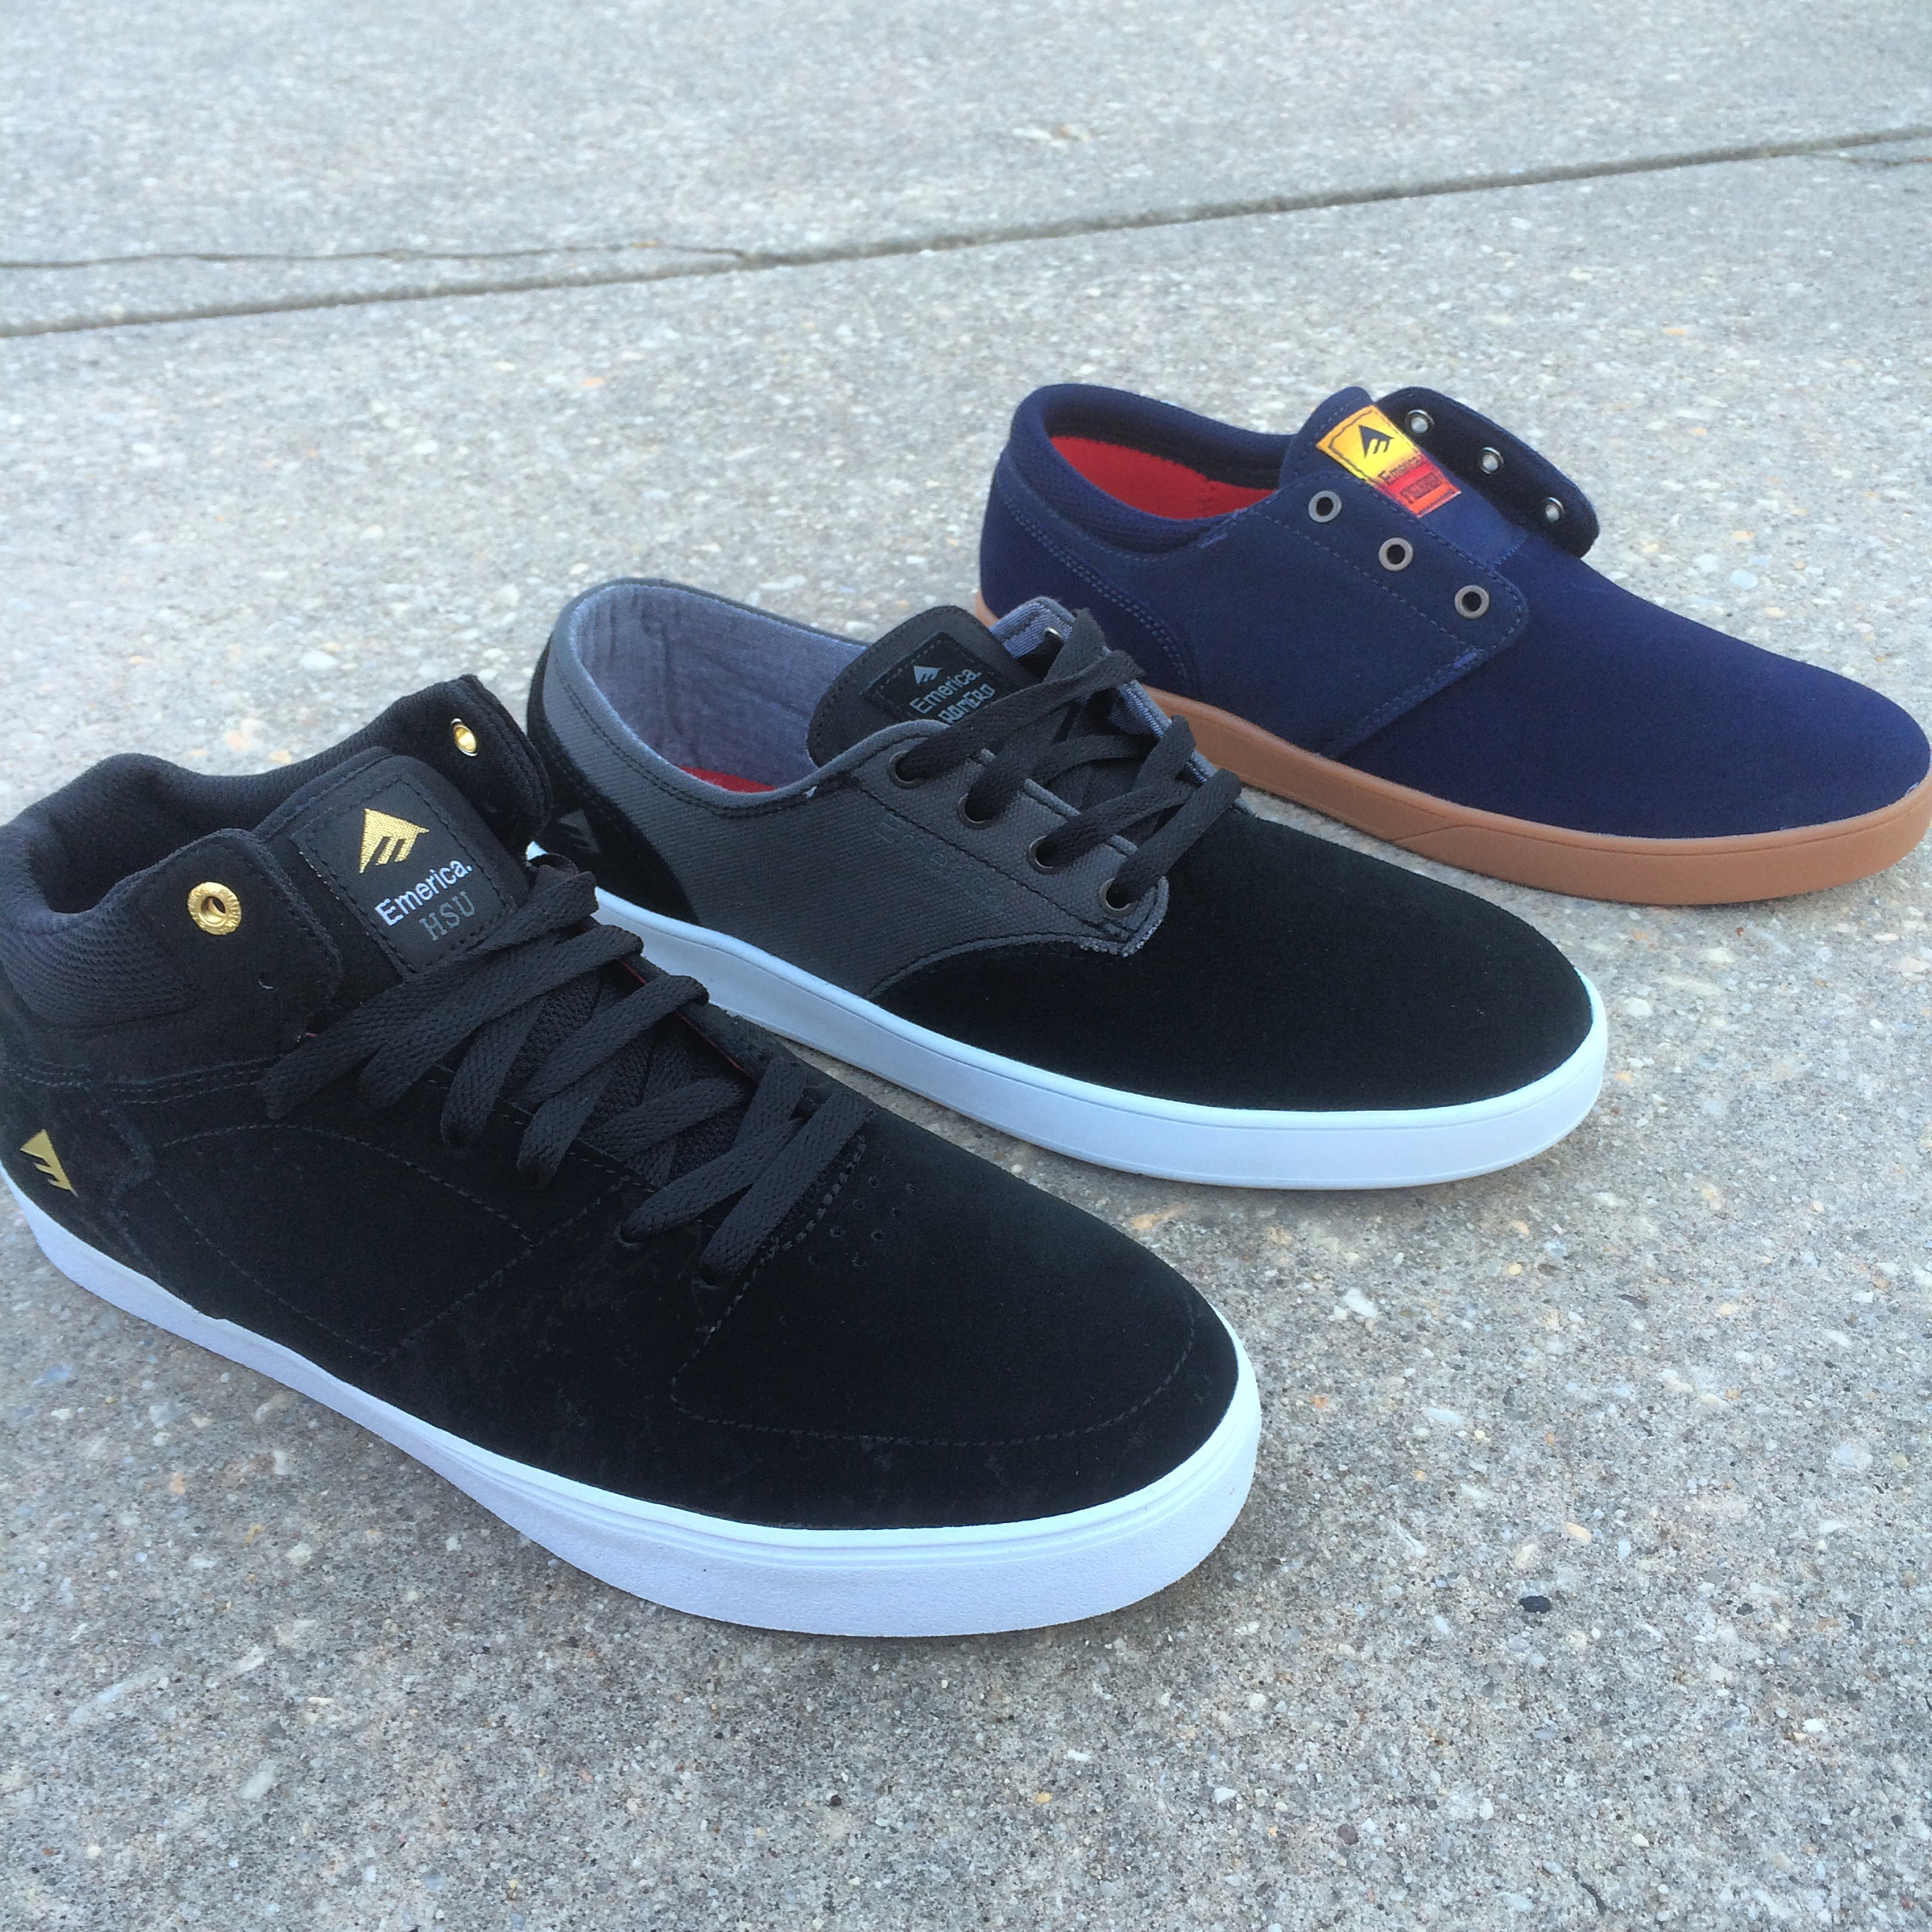 8b1dd5458ac35b New Shoes From Emerica Just Came In At Both Shop Locations. Laced ...